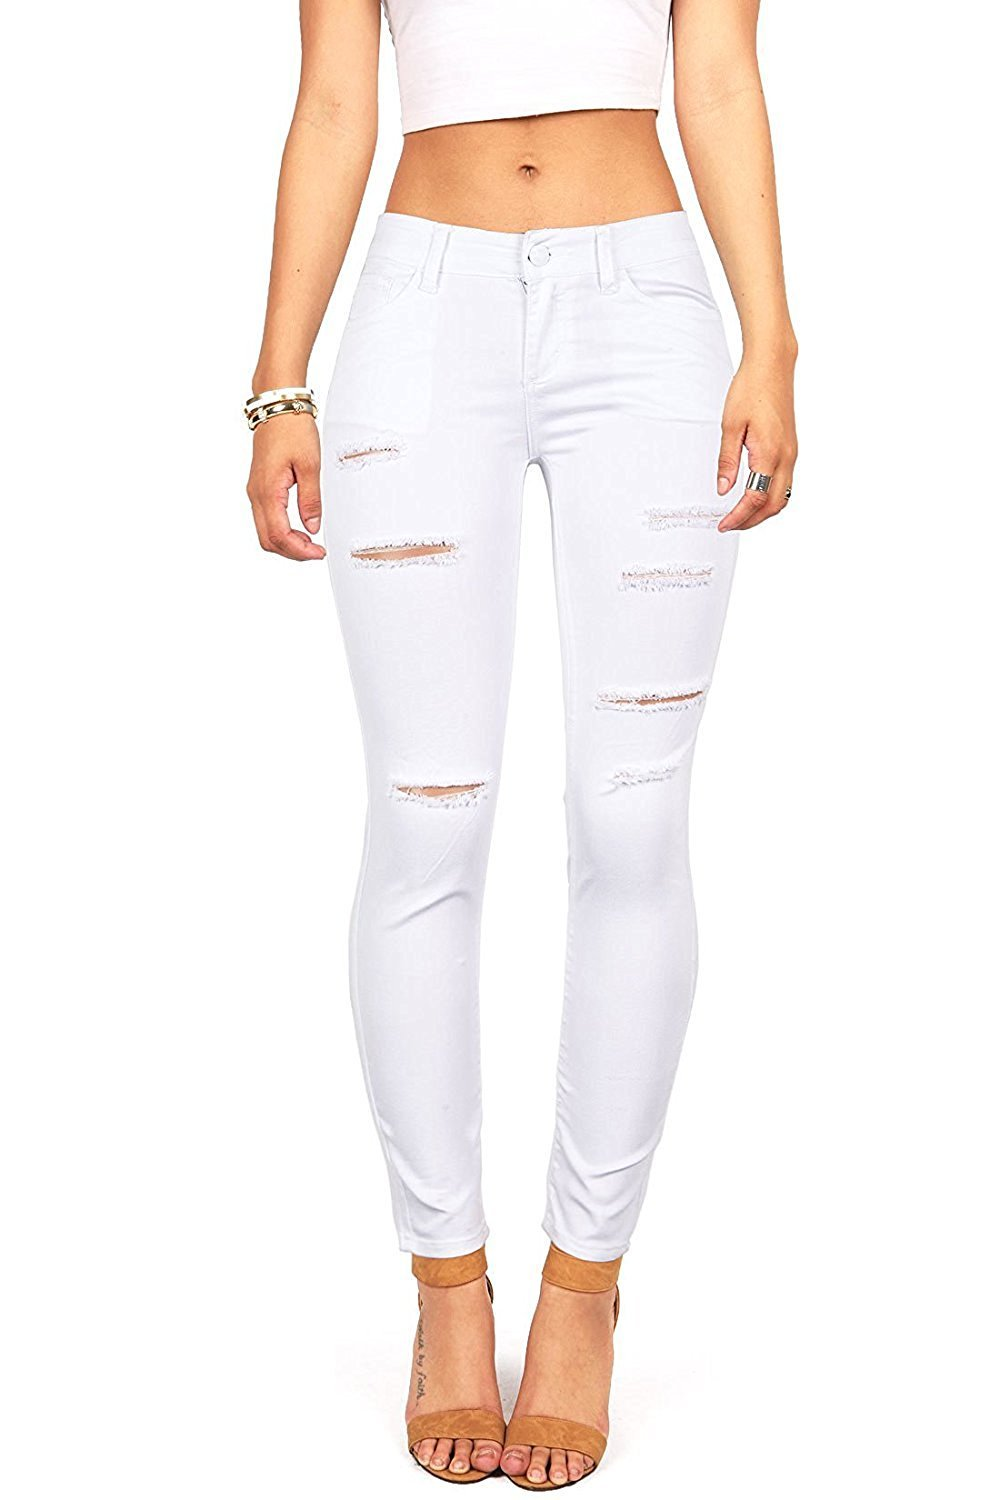 Women's Hight Waisted Butt Lift Stretch Ripped Skinny Jeans Distressed Denim Pants (US 10, White 16)